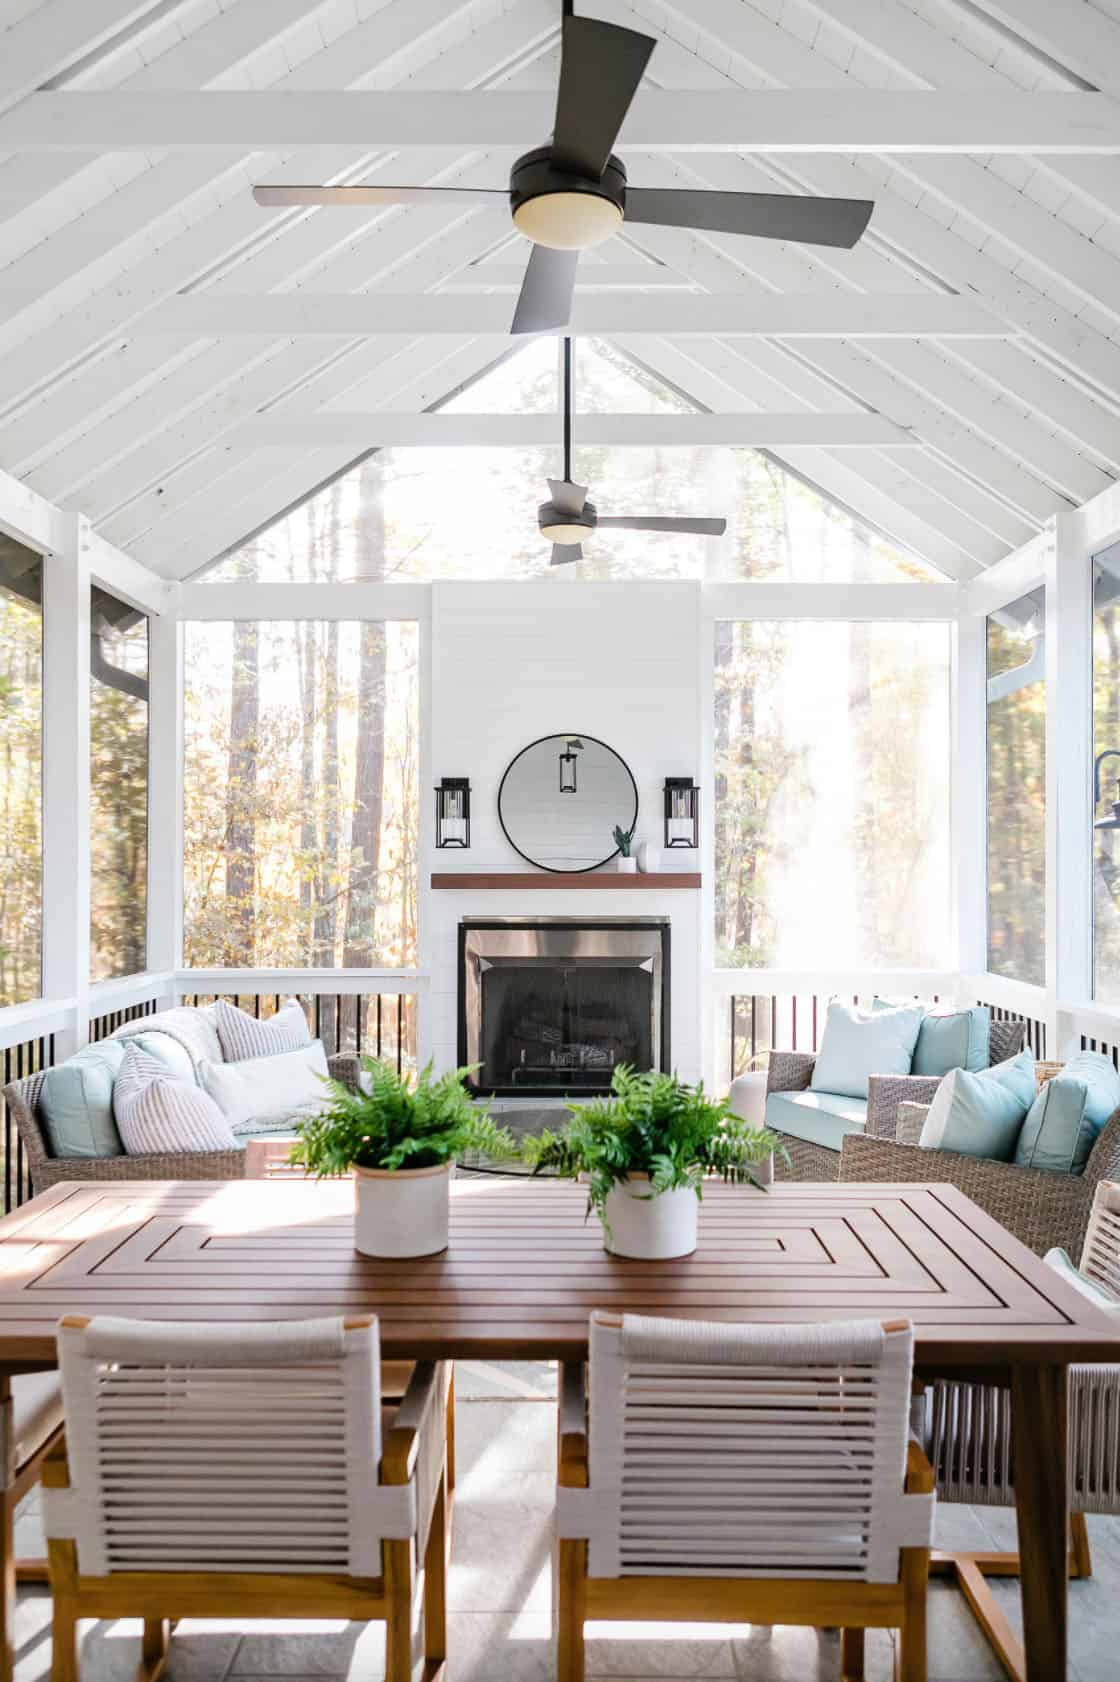 rustic-screen-porch-scandinavian-accents-woodsy-views